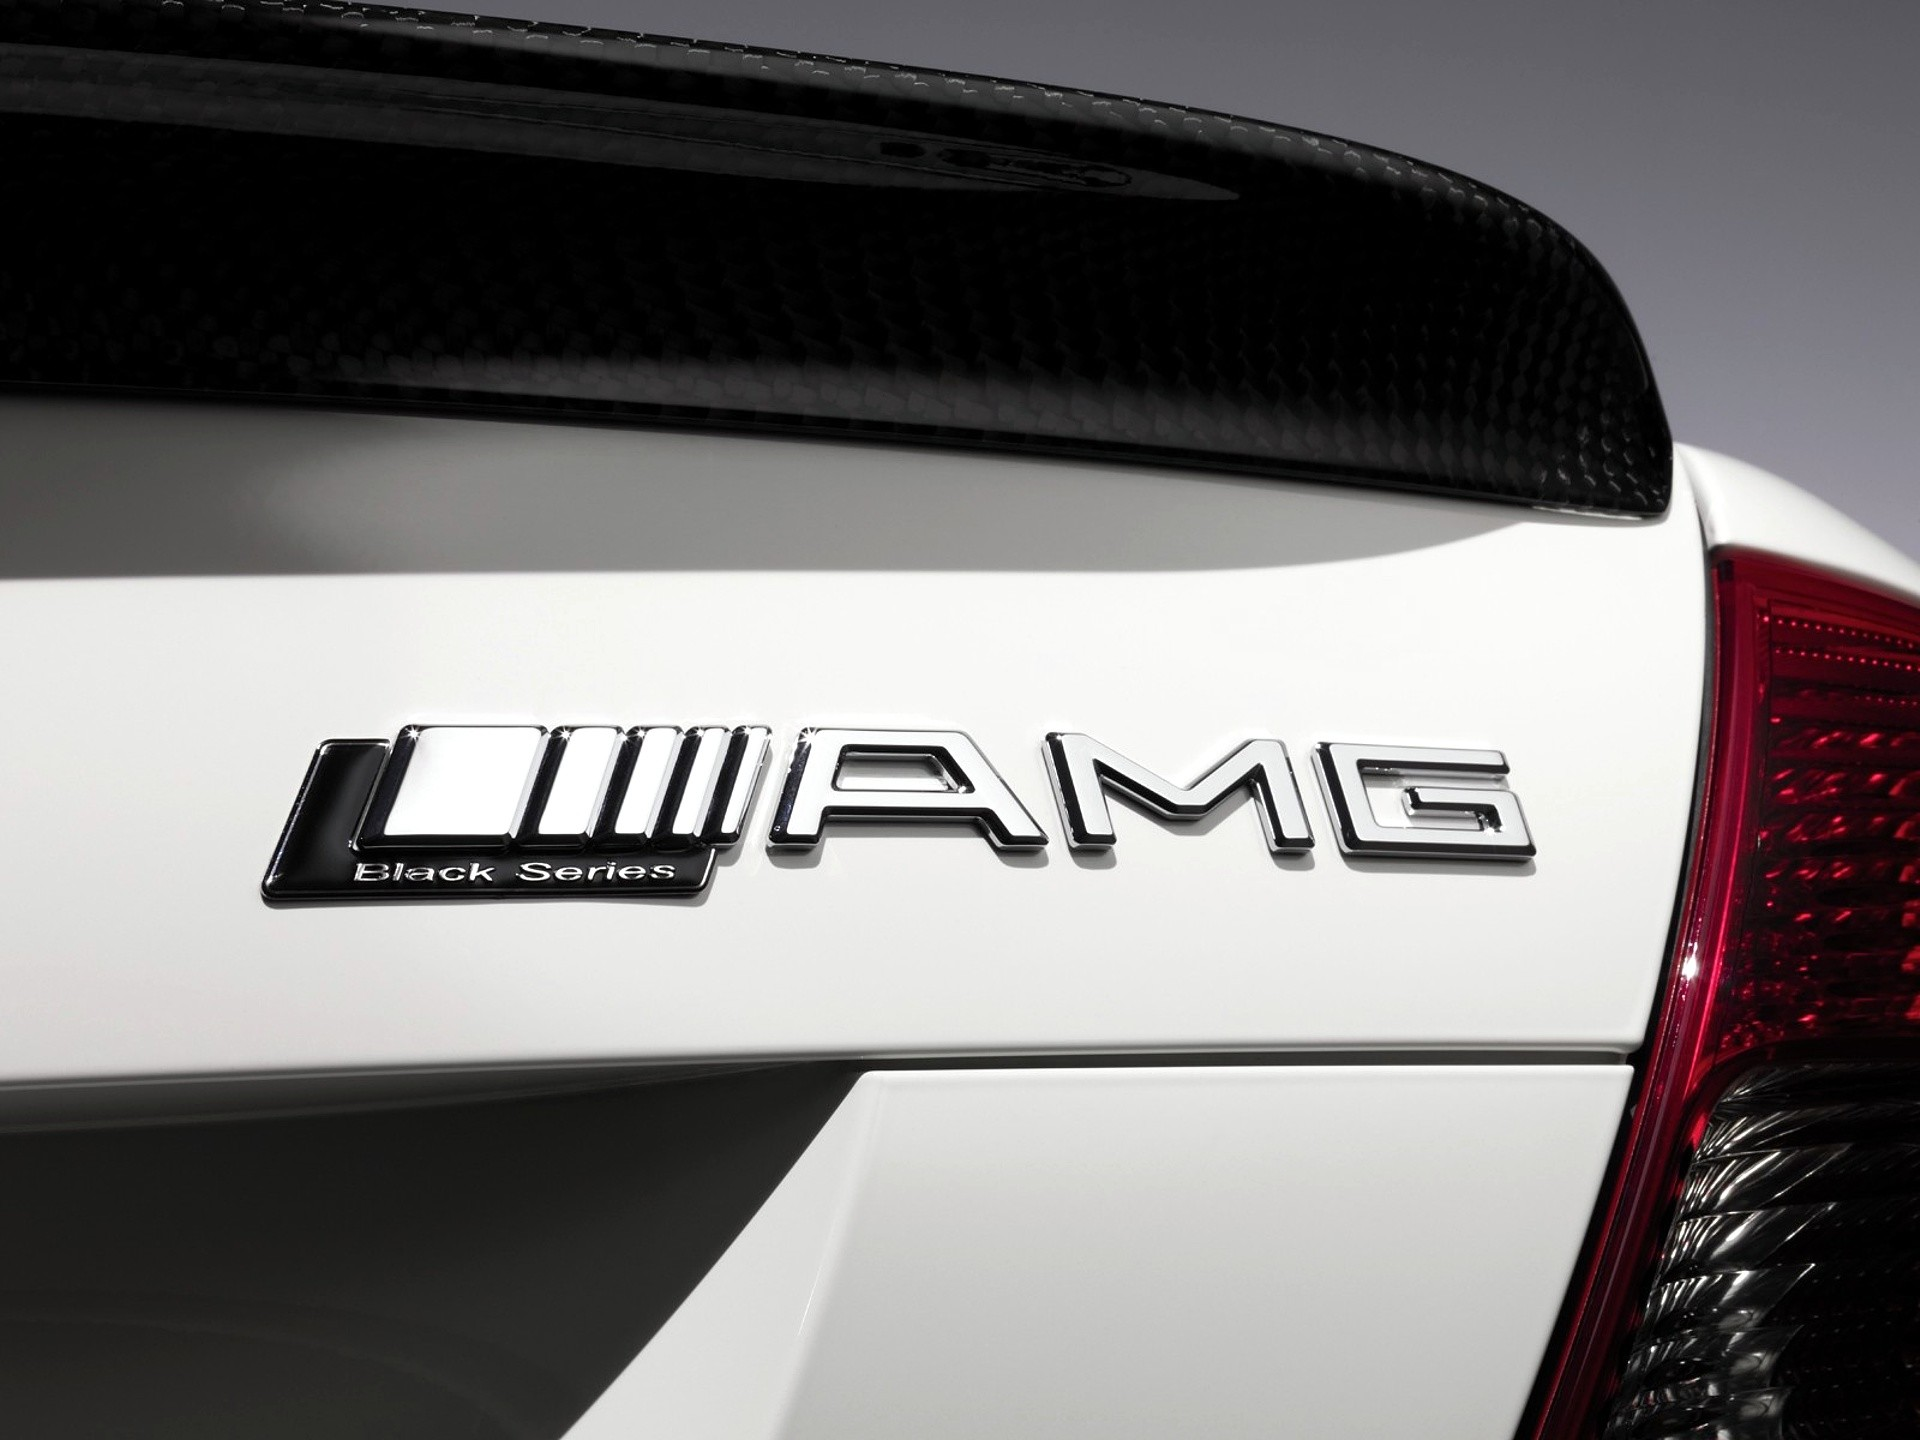 Mercedes AMG logo wallpapers from www.yours-cars.eu | Hd Wallpapers Cars |  Pinterest | Mercedes AMG, Cars and Dream cars